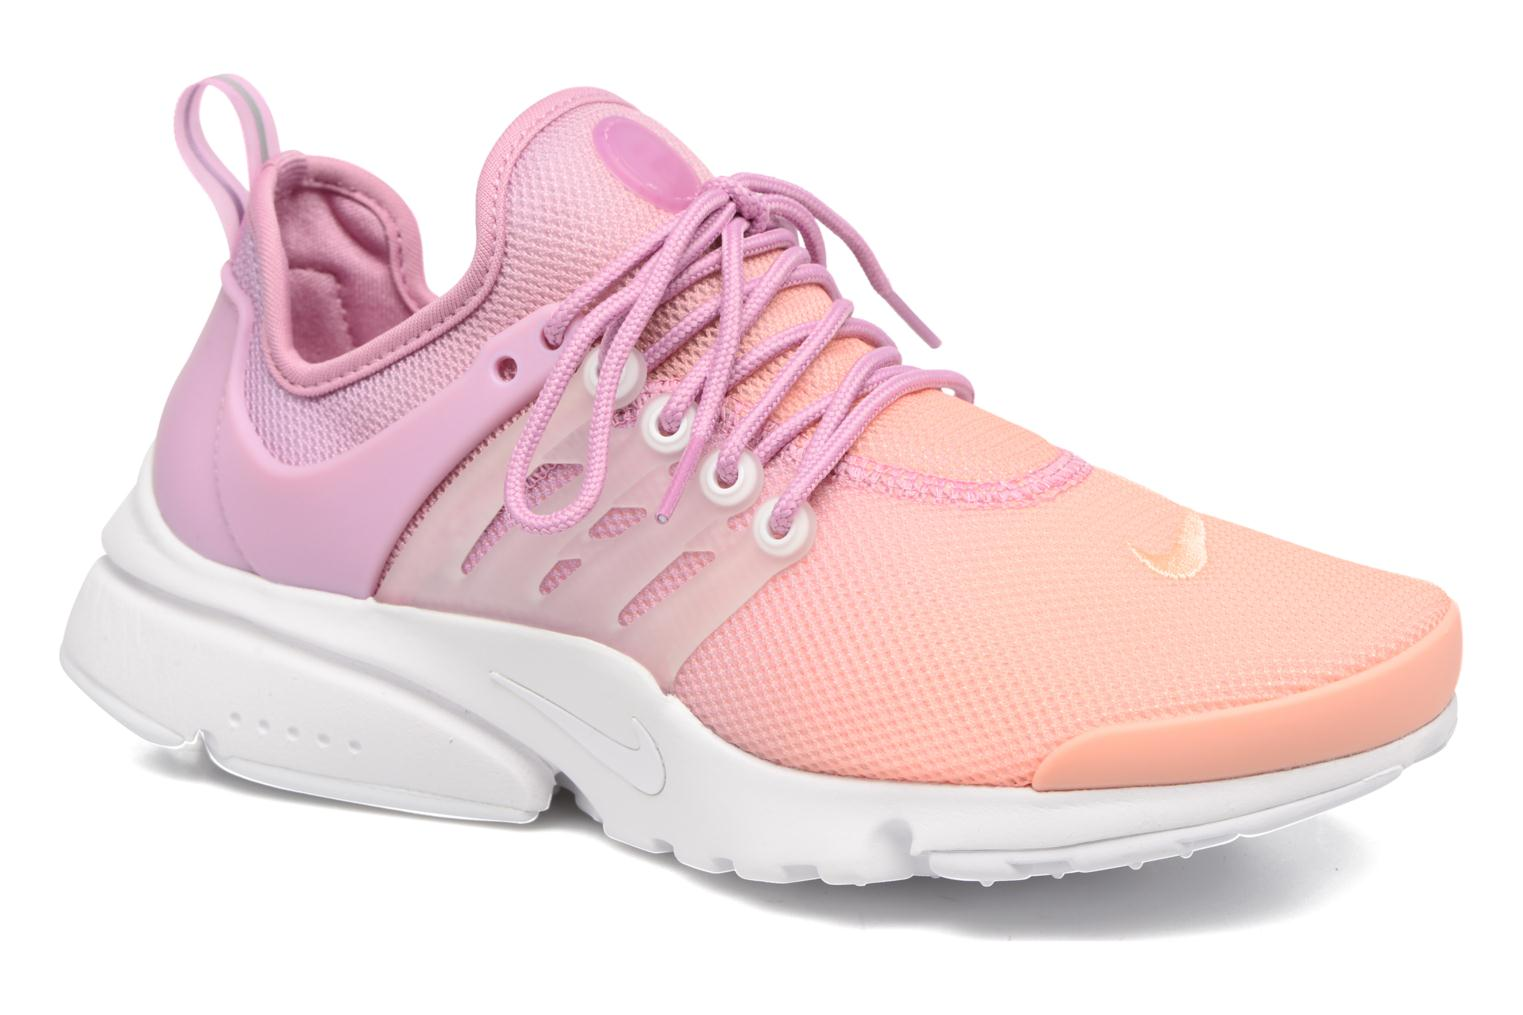 Wmns Air Presto Ultra Br SUNSET GLOW/WHITE-ORCHID-GLACIER BLUE